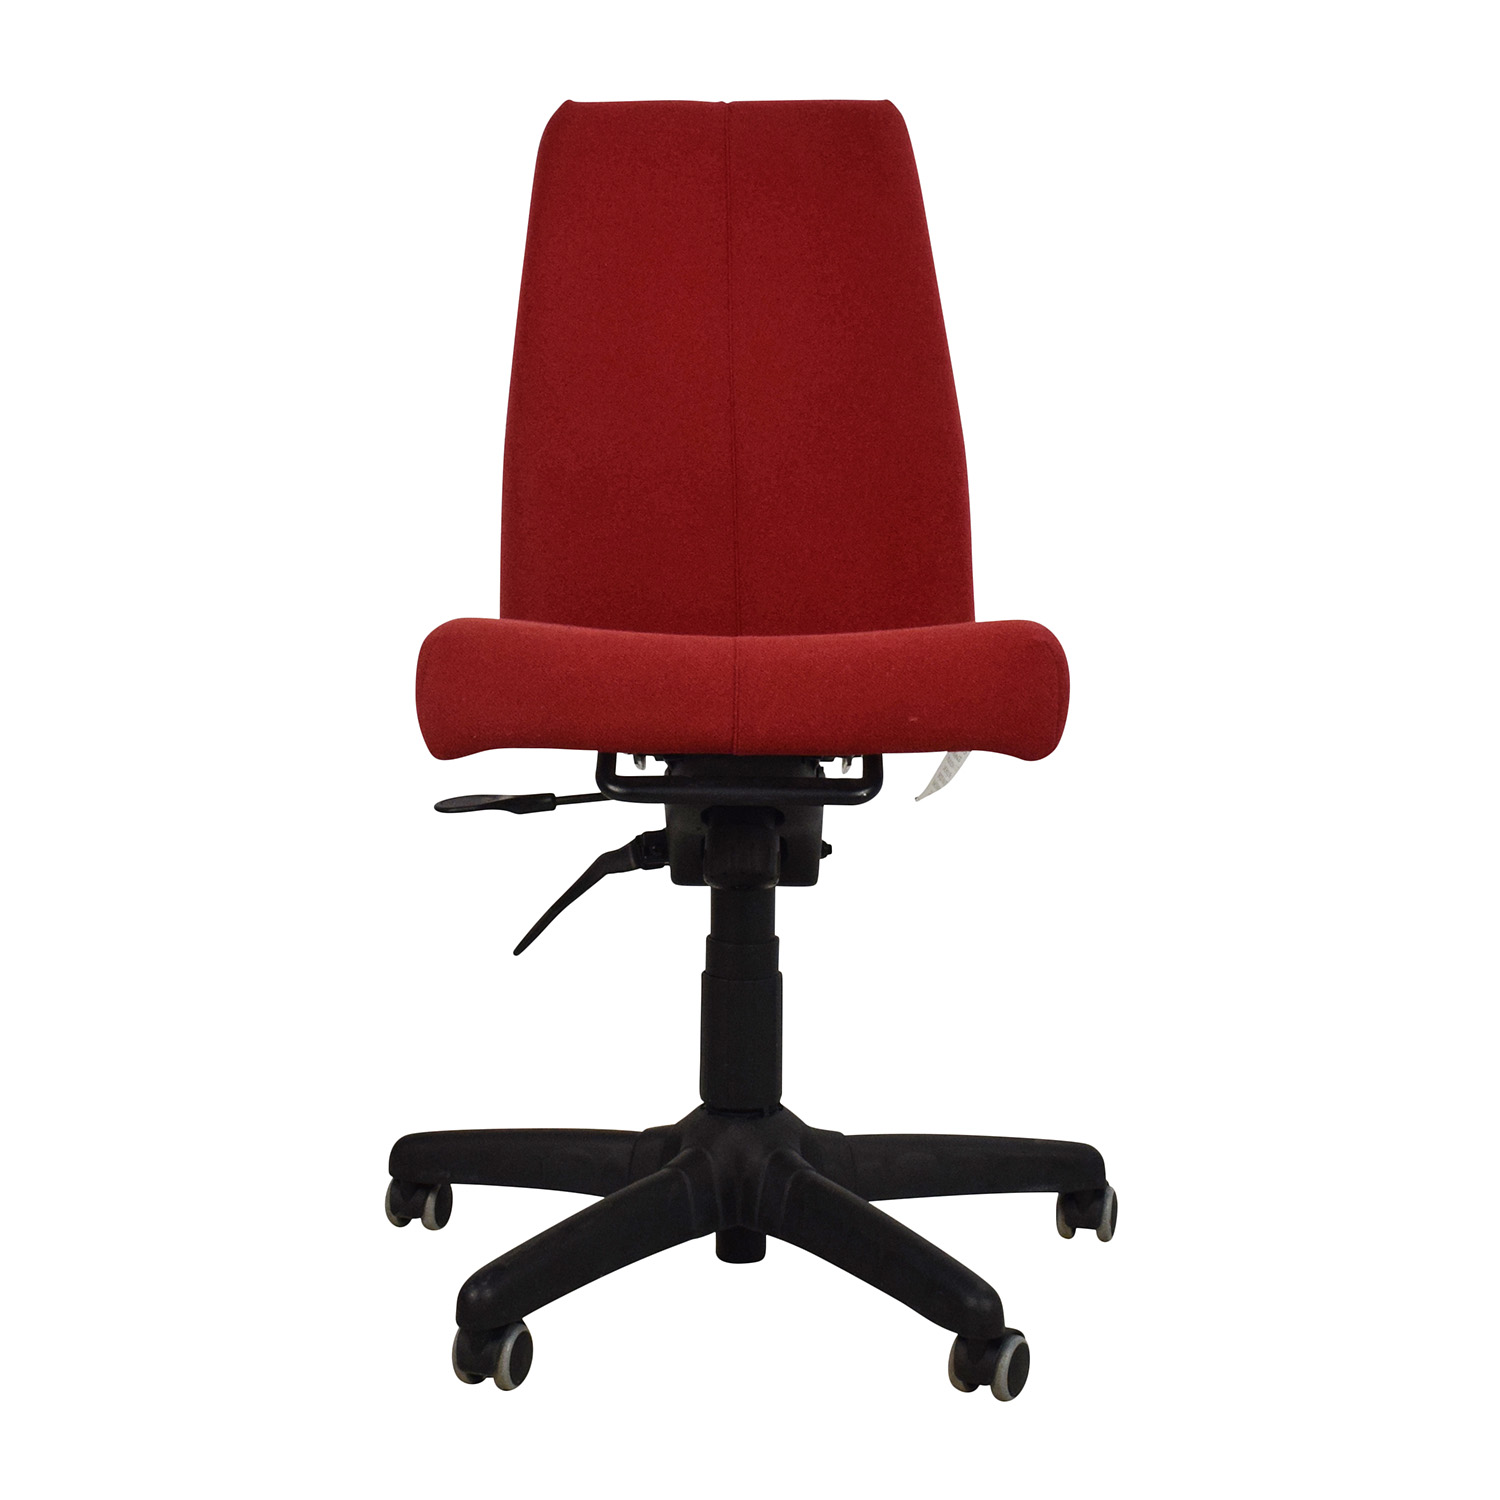 Red Armless Adjustable Home Office Chair for sale